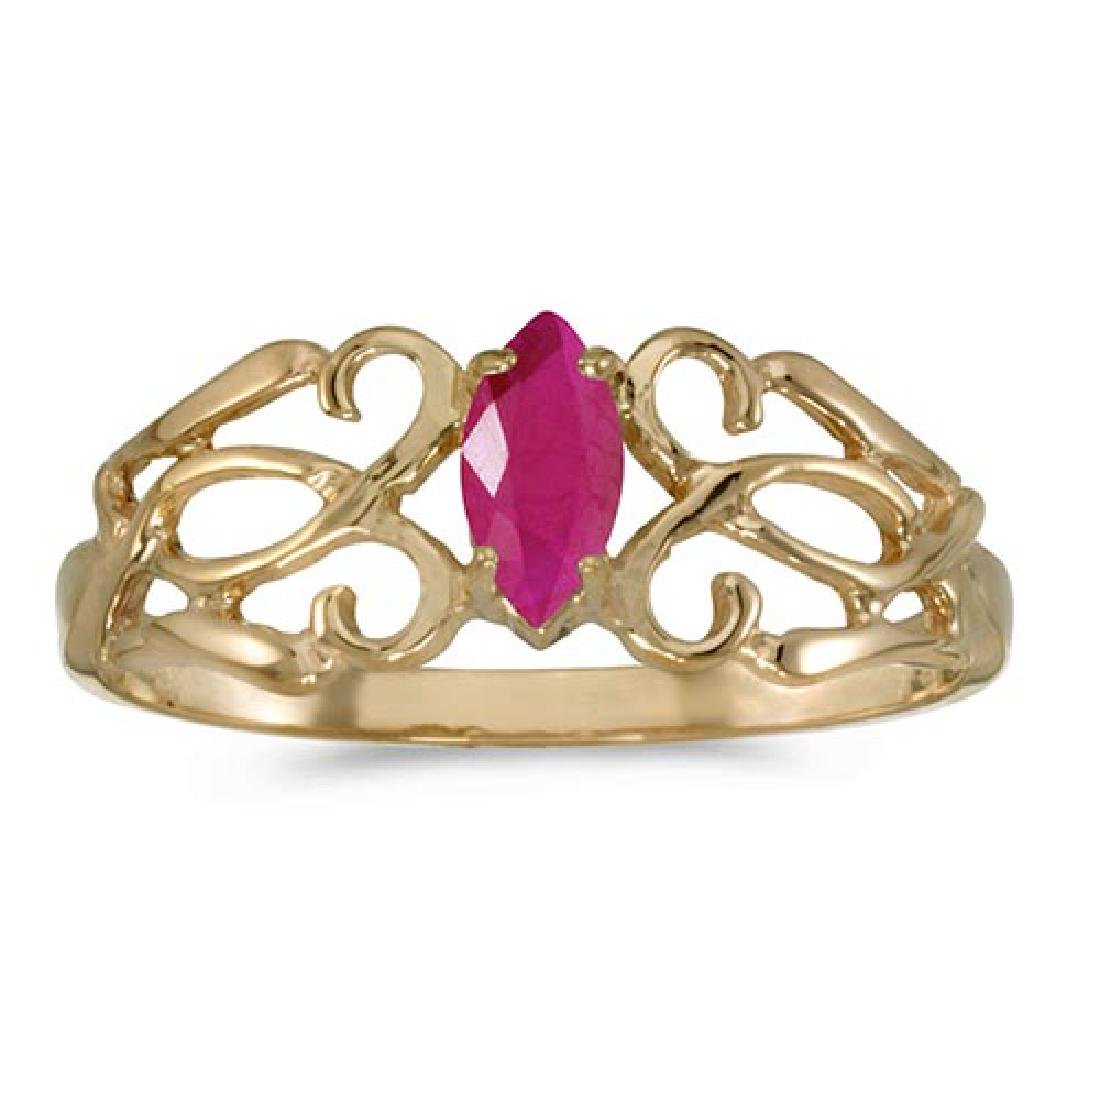 Certified 10k Yellow Gold Marquise Ruby Filagree Ring 0